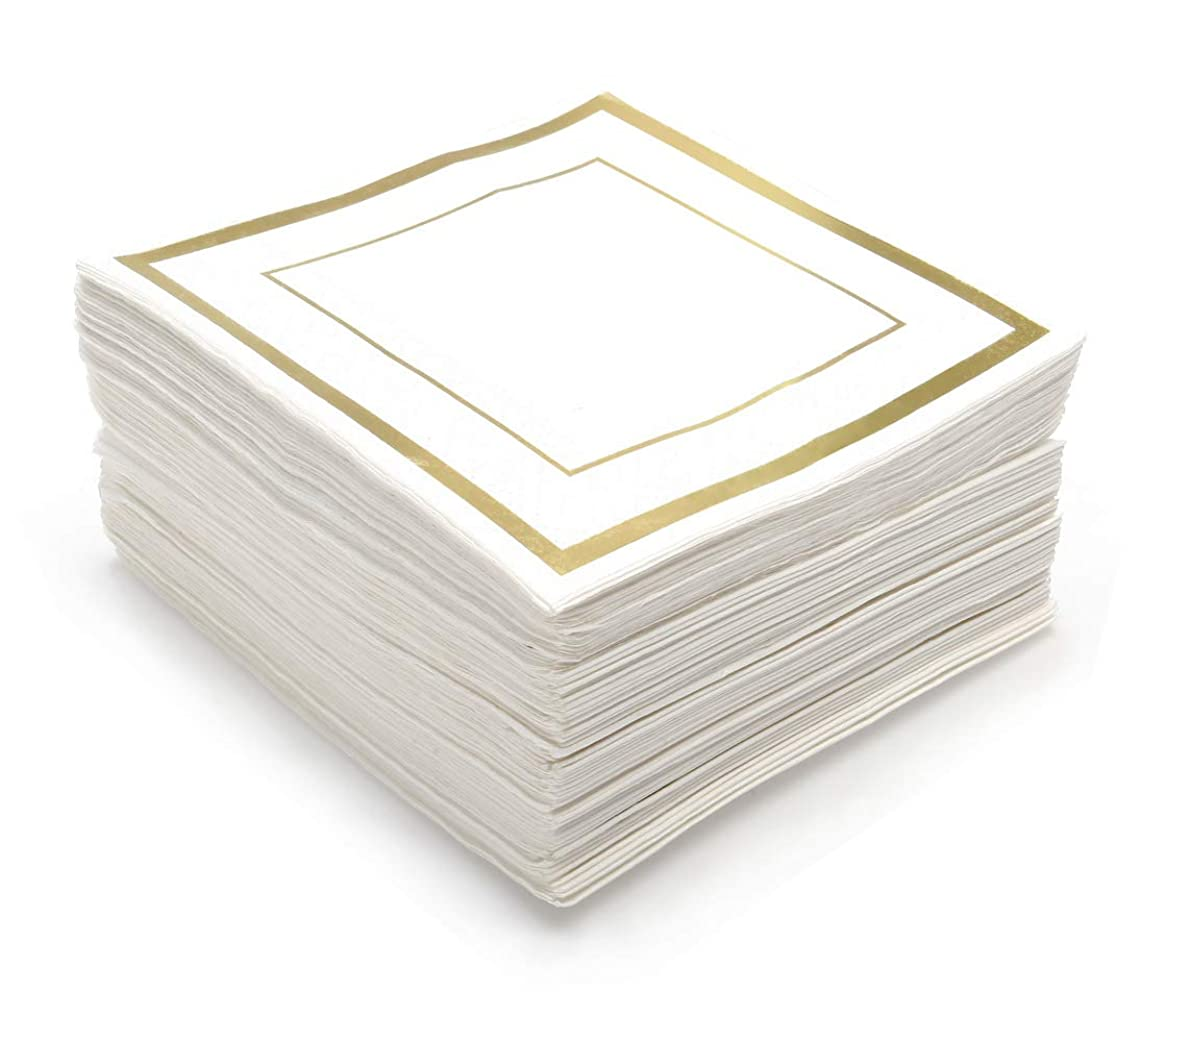 GLAM Cocktail Napkins, Gold Trim - 100 Pack | 5-Inches by 5-Inches Wedding Napkins, Paper | 5x5 Gold Napkins, Disposable | Party Napkins, White and Gold | Beverage Napkins, Gold Rim